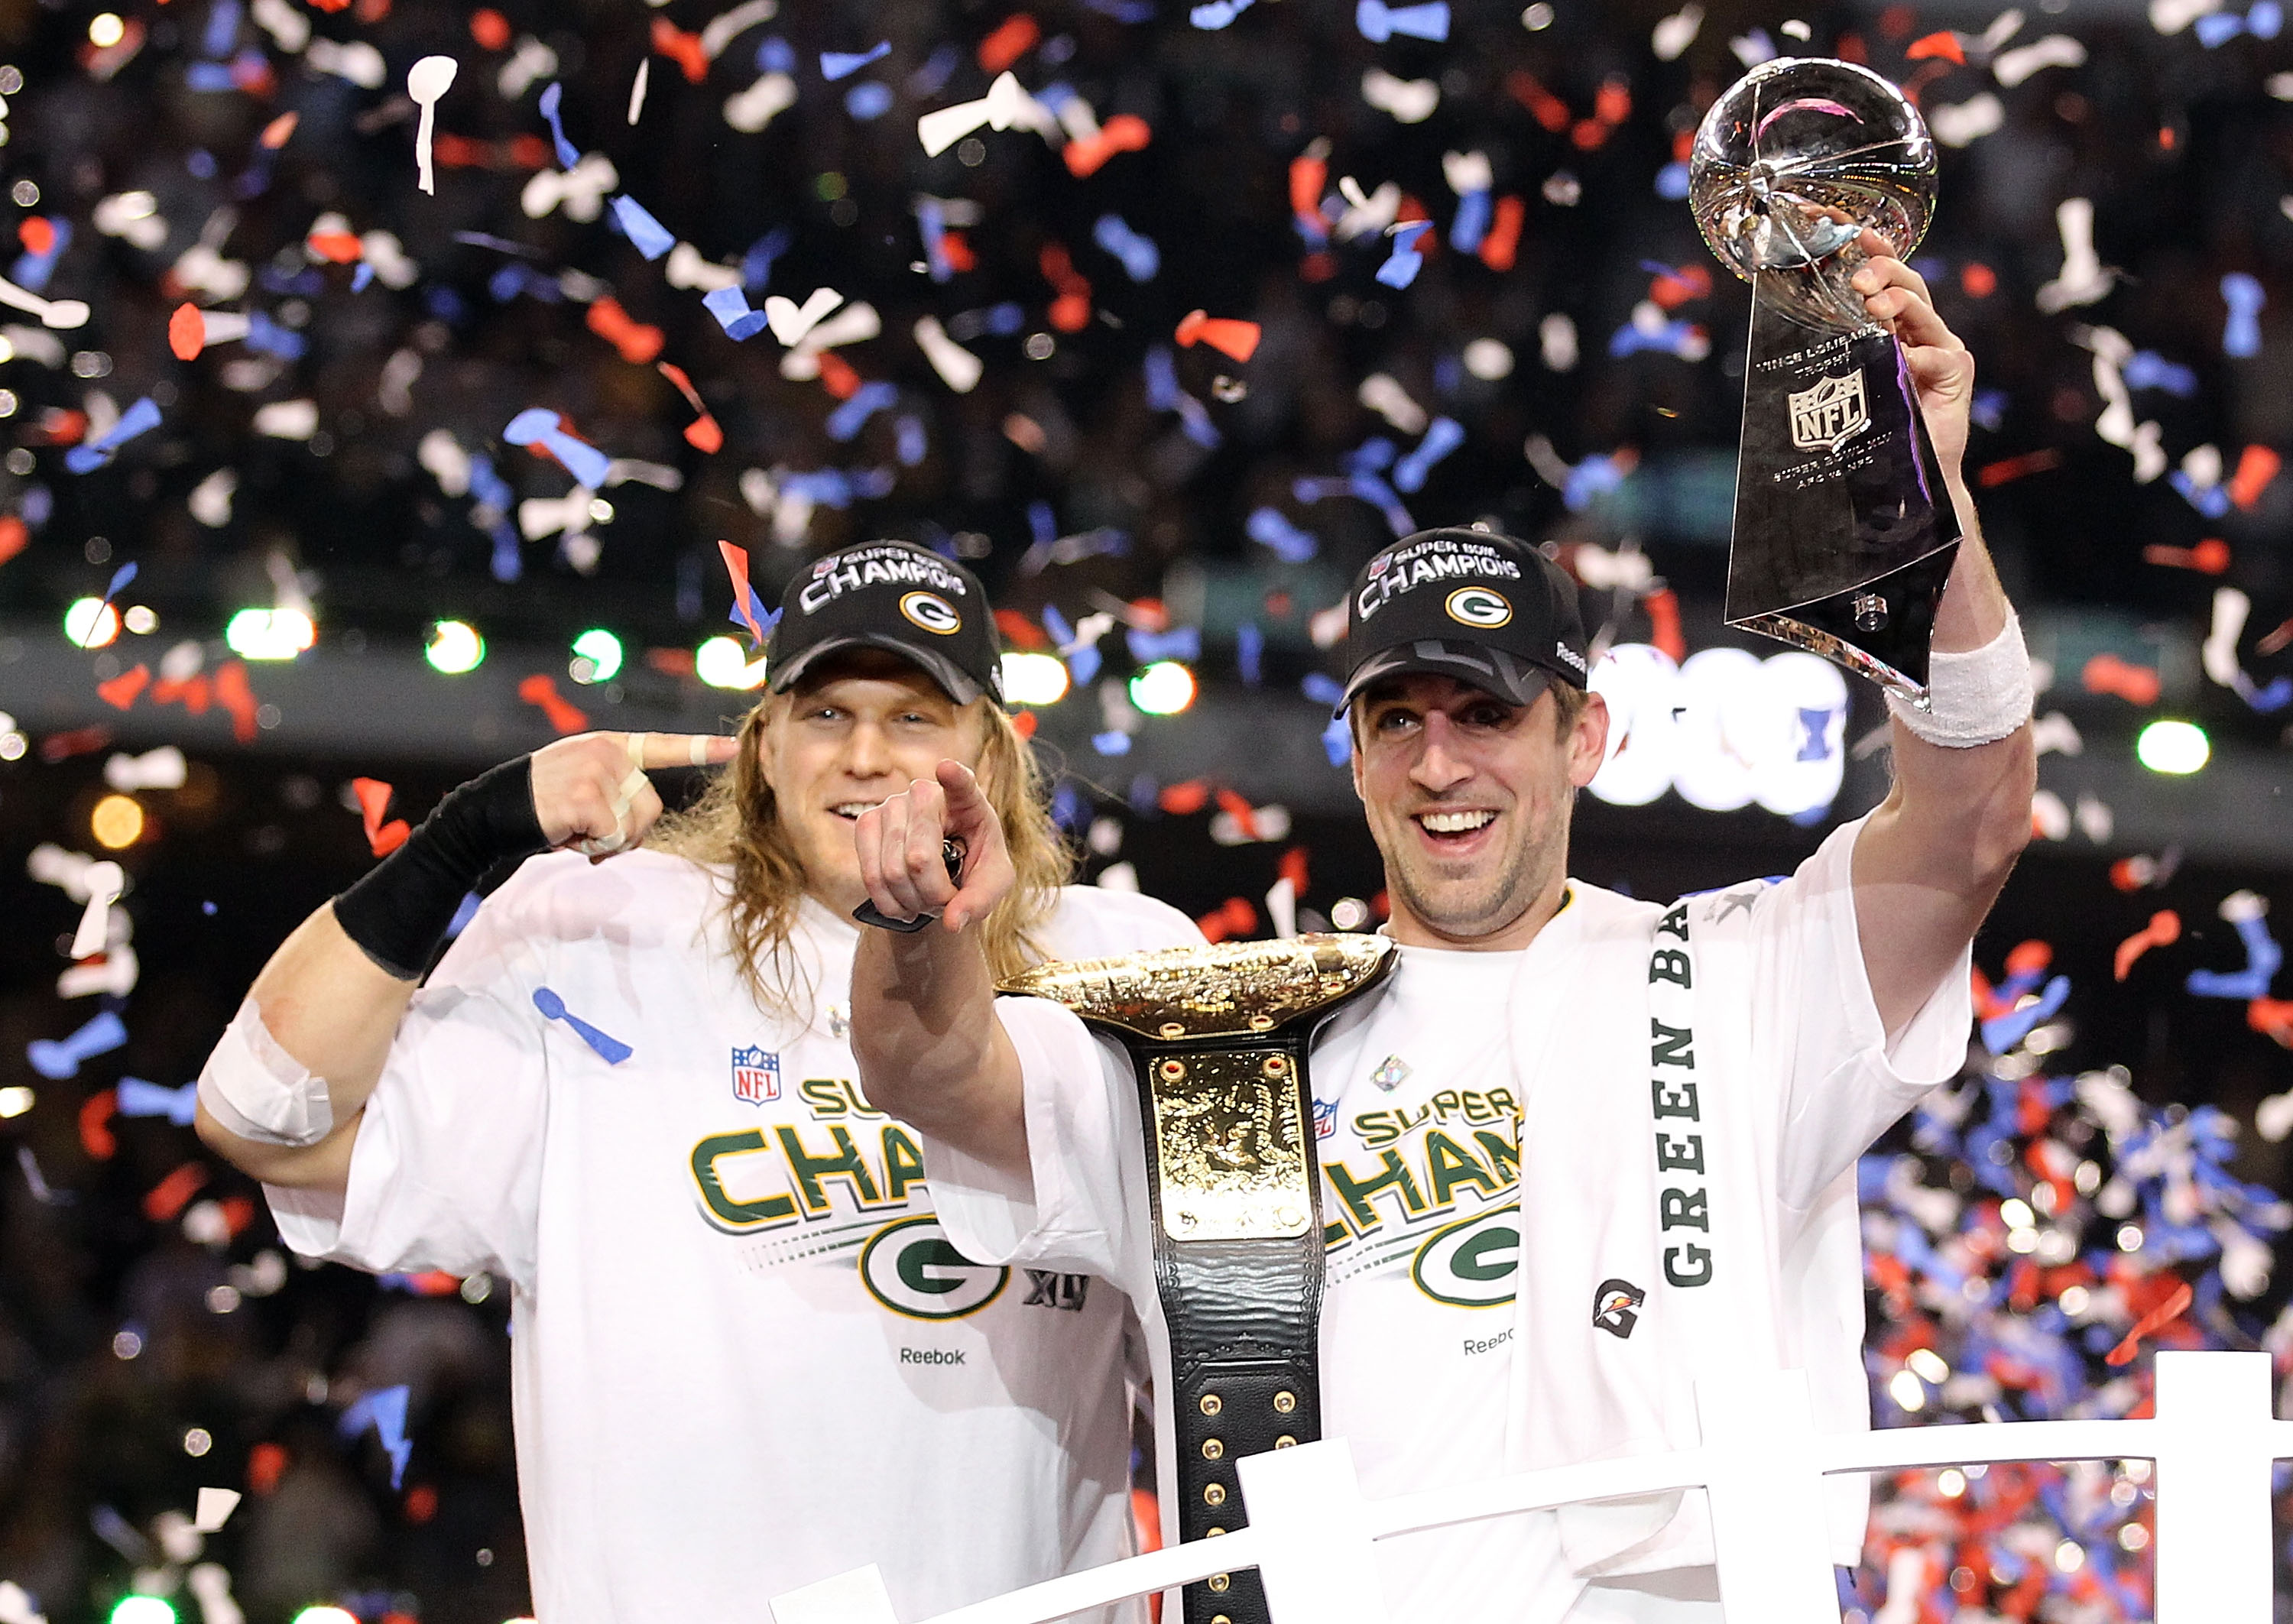 ARLINGTON, TX - FEBRUARY 06:  Super Bowl MVP Aaron Rodgers #12 of the Green Bay Packers holds up the Vince Lombardi Trophy as Clay Matthews #52 looks on after winning Super Bowl XLV 31-25 against the Pittsburgh Steelers at Cowboys Stadium on February 6, 2